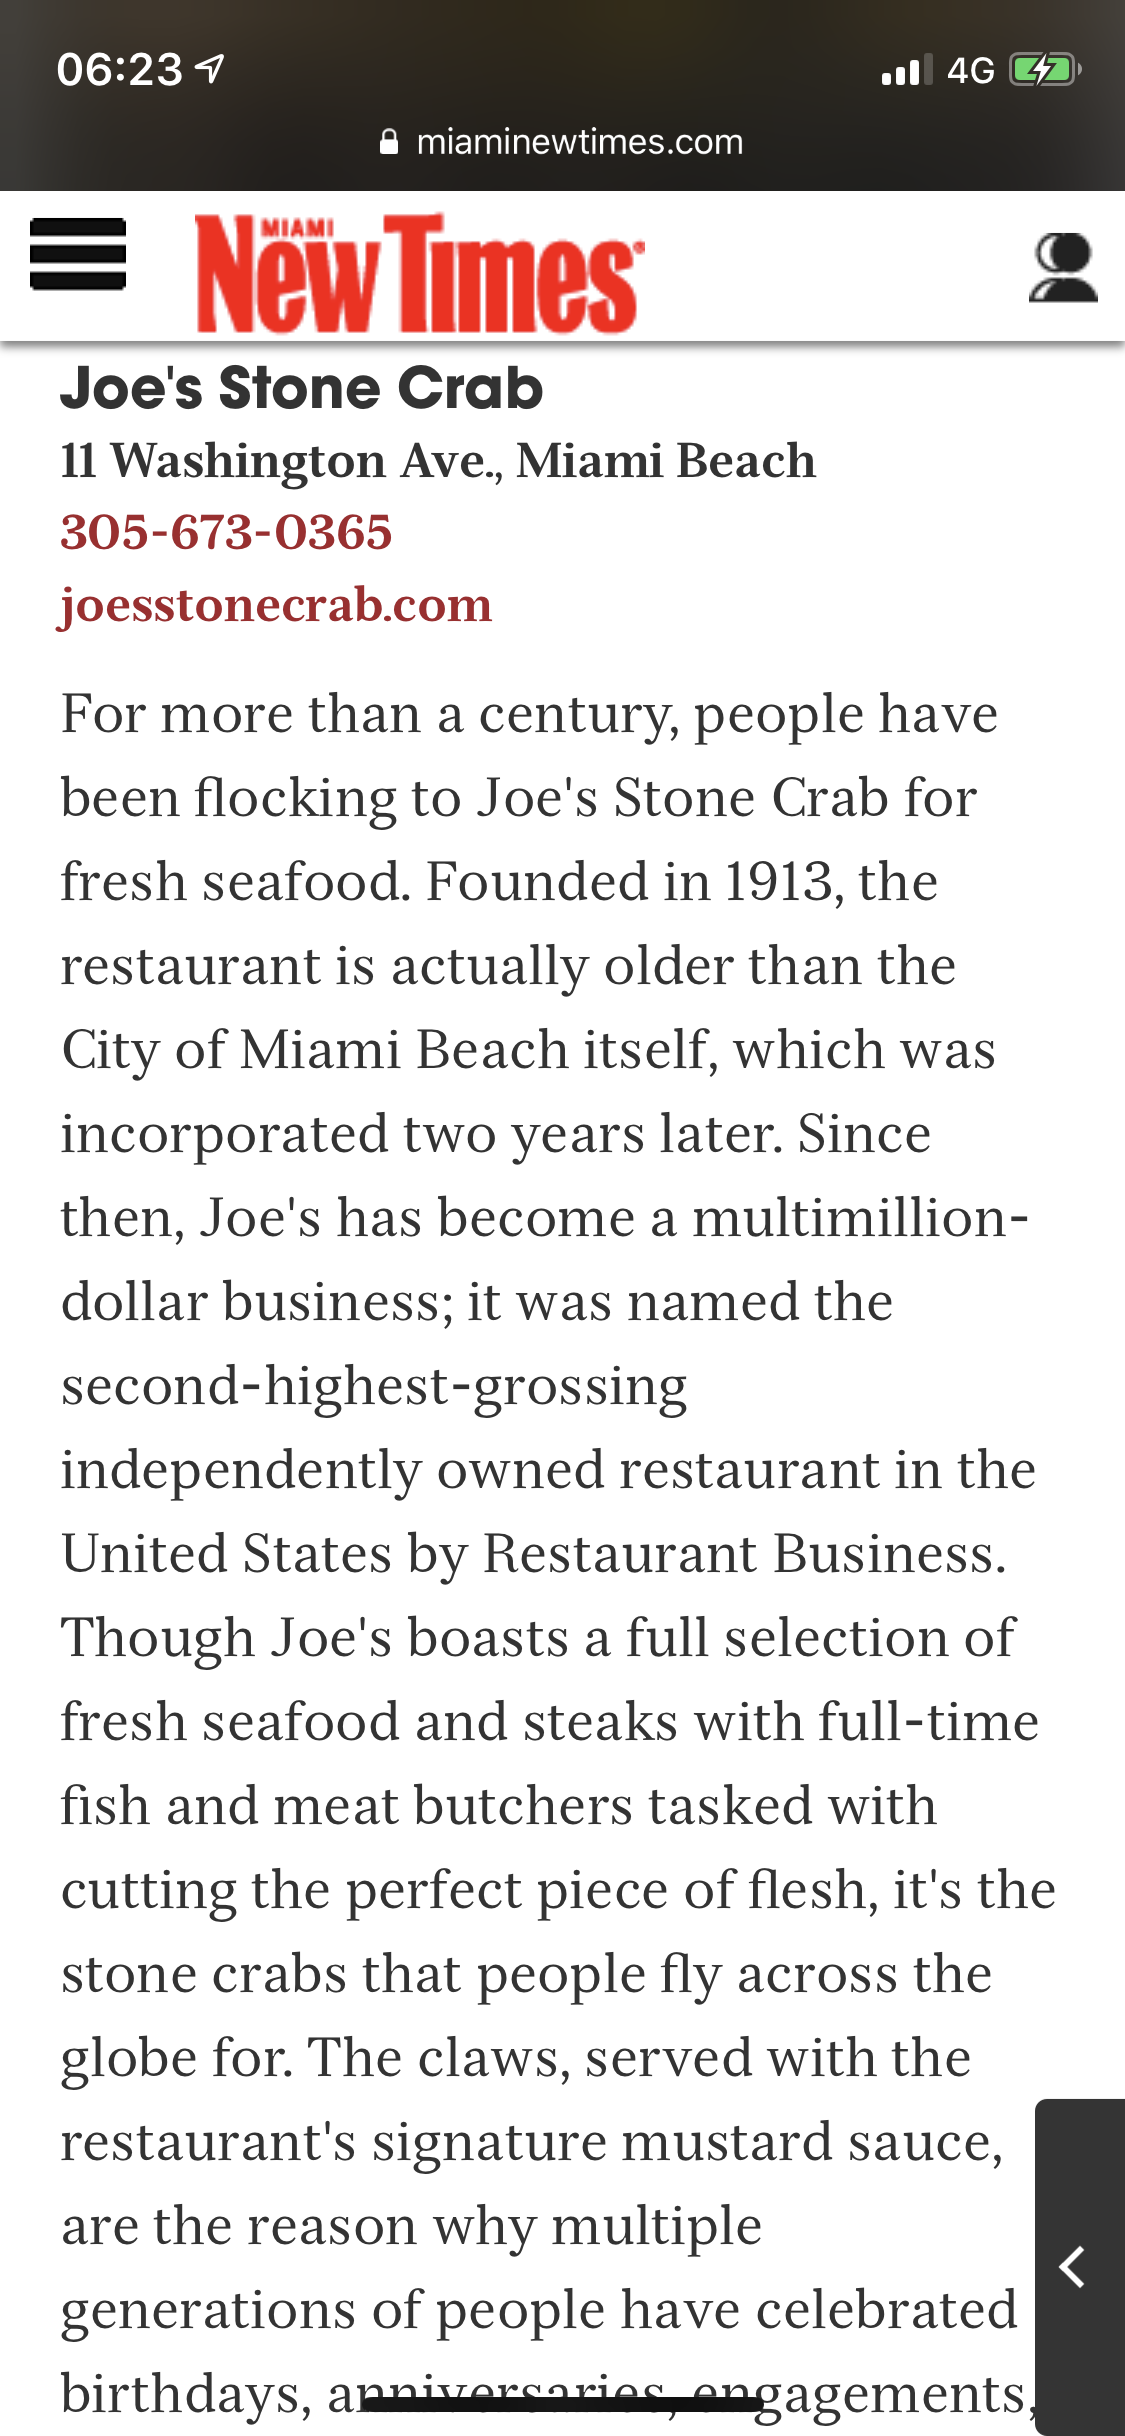 Found this description about the restaurant which is spot on!